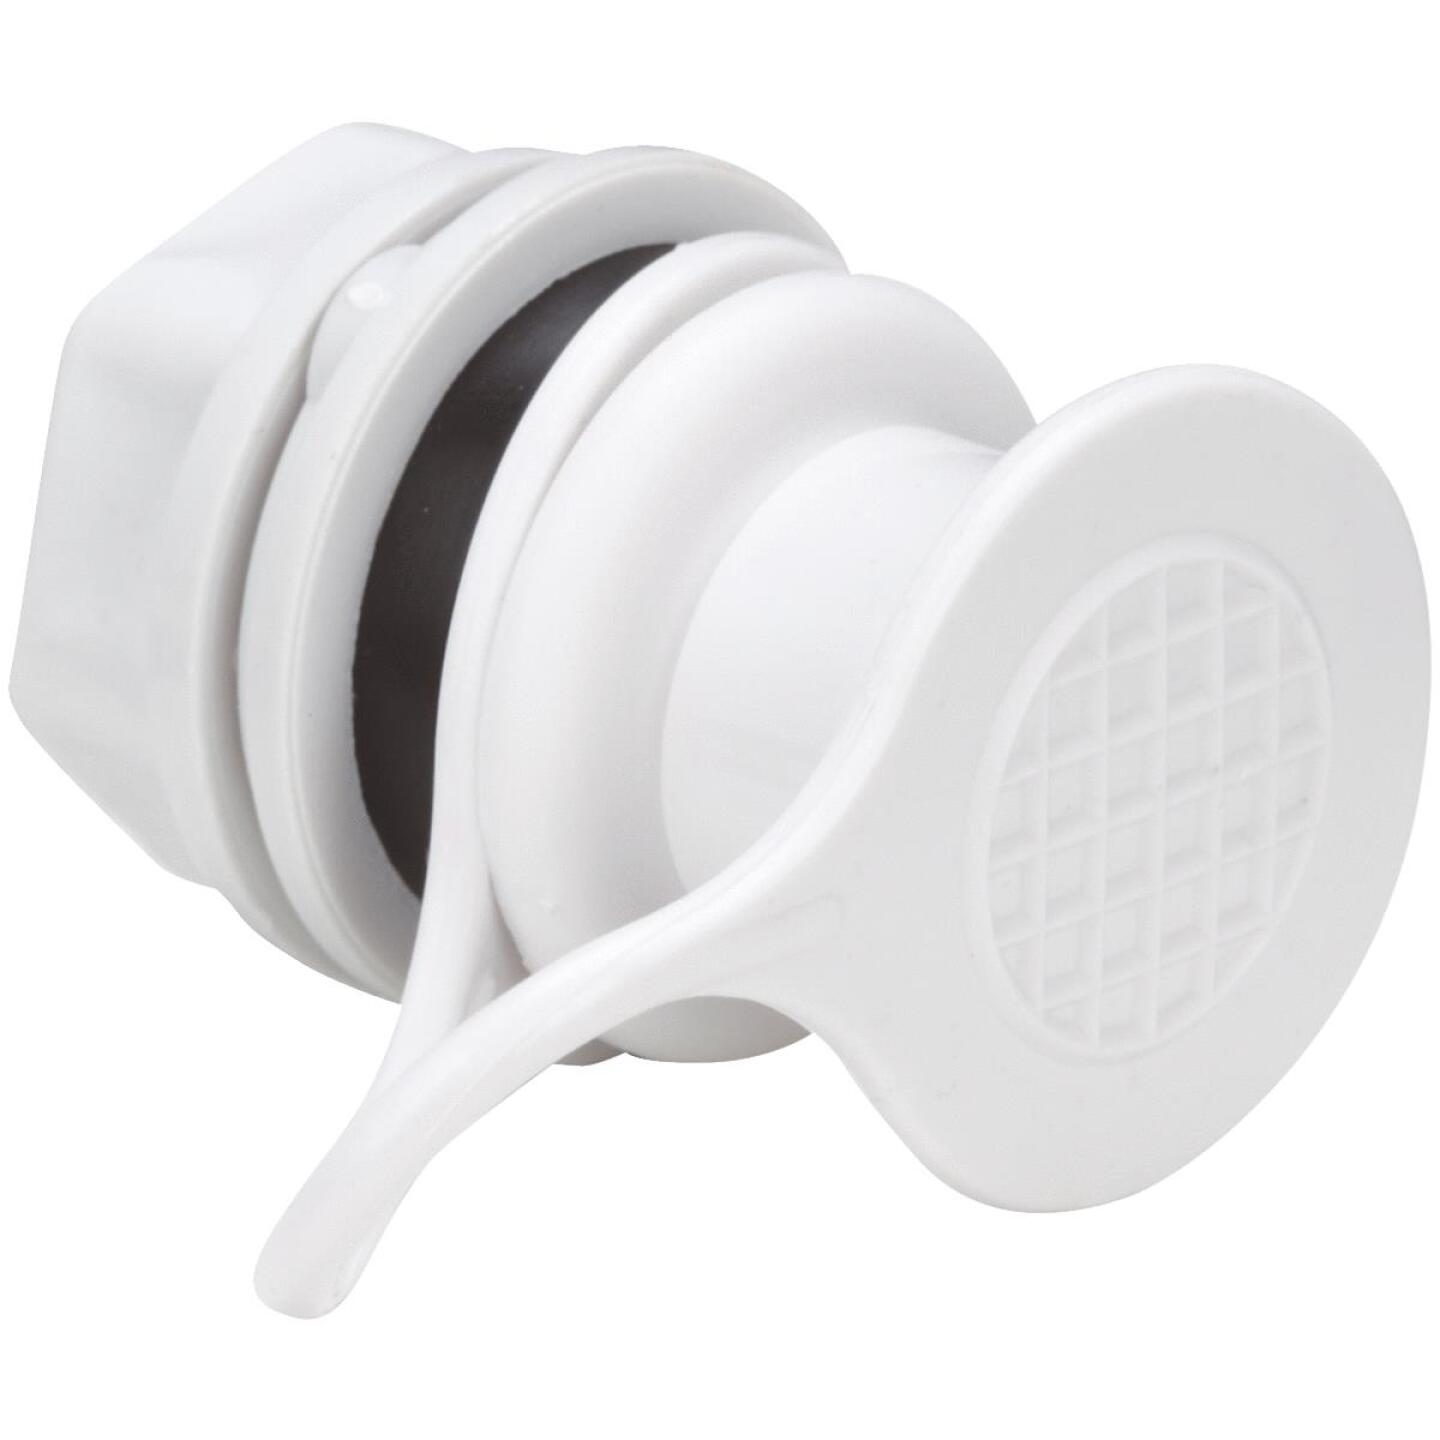 Igloo Triple Snap Push Cap Cooler Drain Plug Image 1